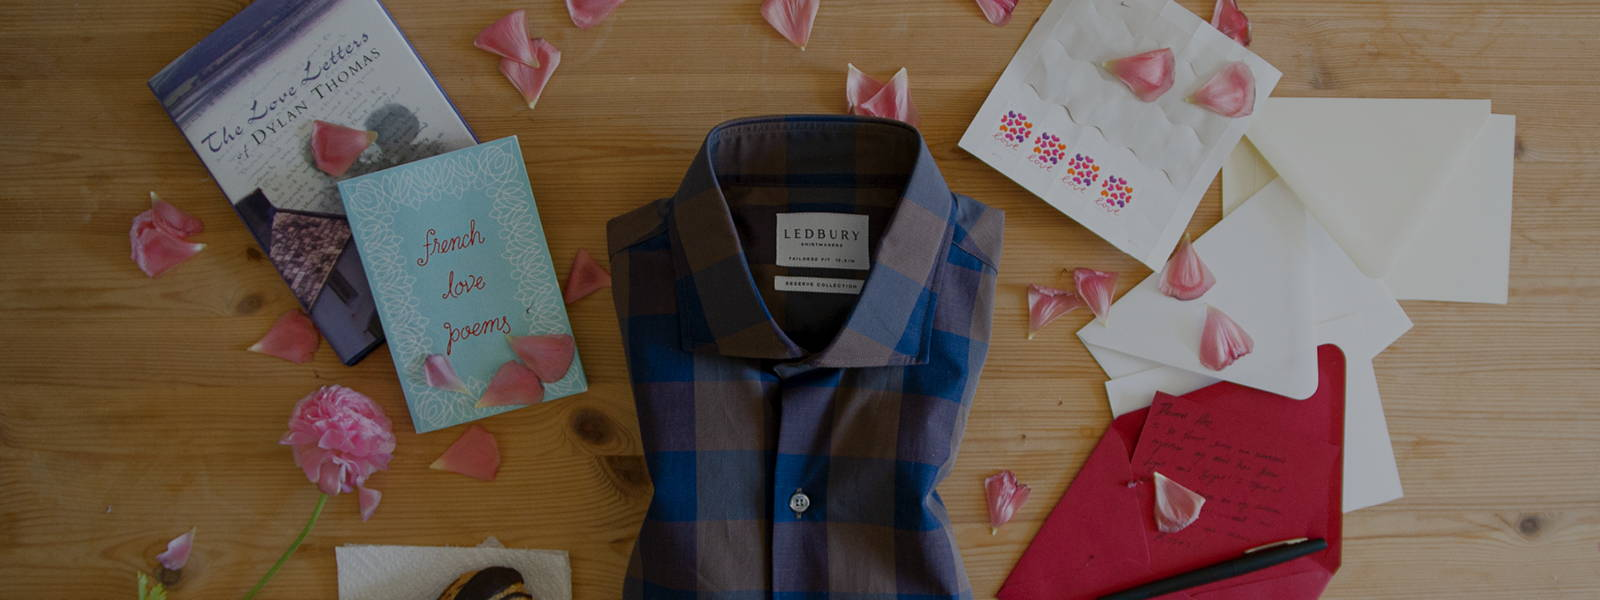 Featuring this weeks Sunday Shirting The Brown Tazewell Chambray Gingham Casual Shirt surround by flower pedals, a book, letters, stamps, coffee and pastries.